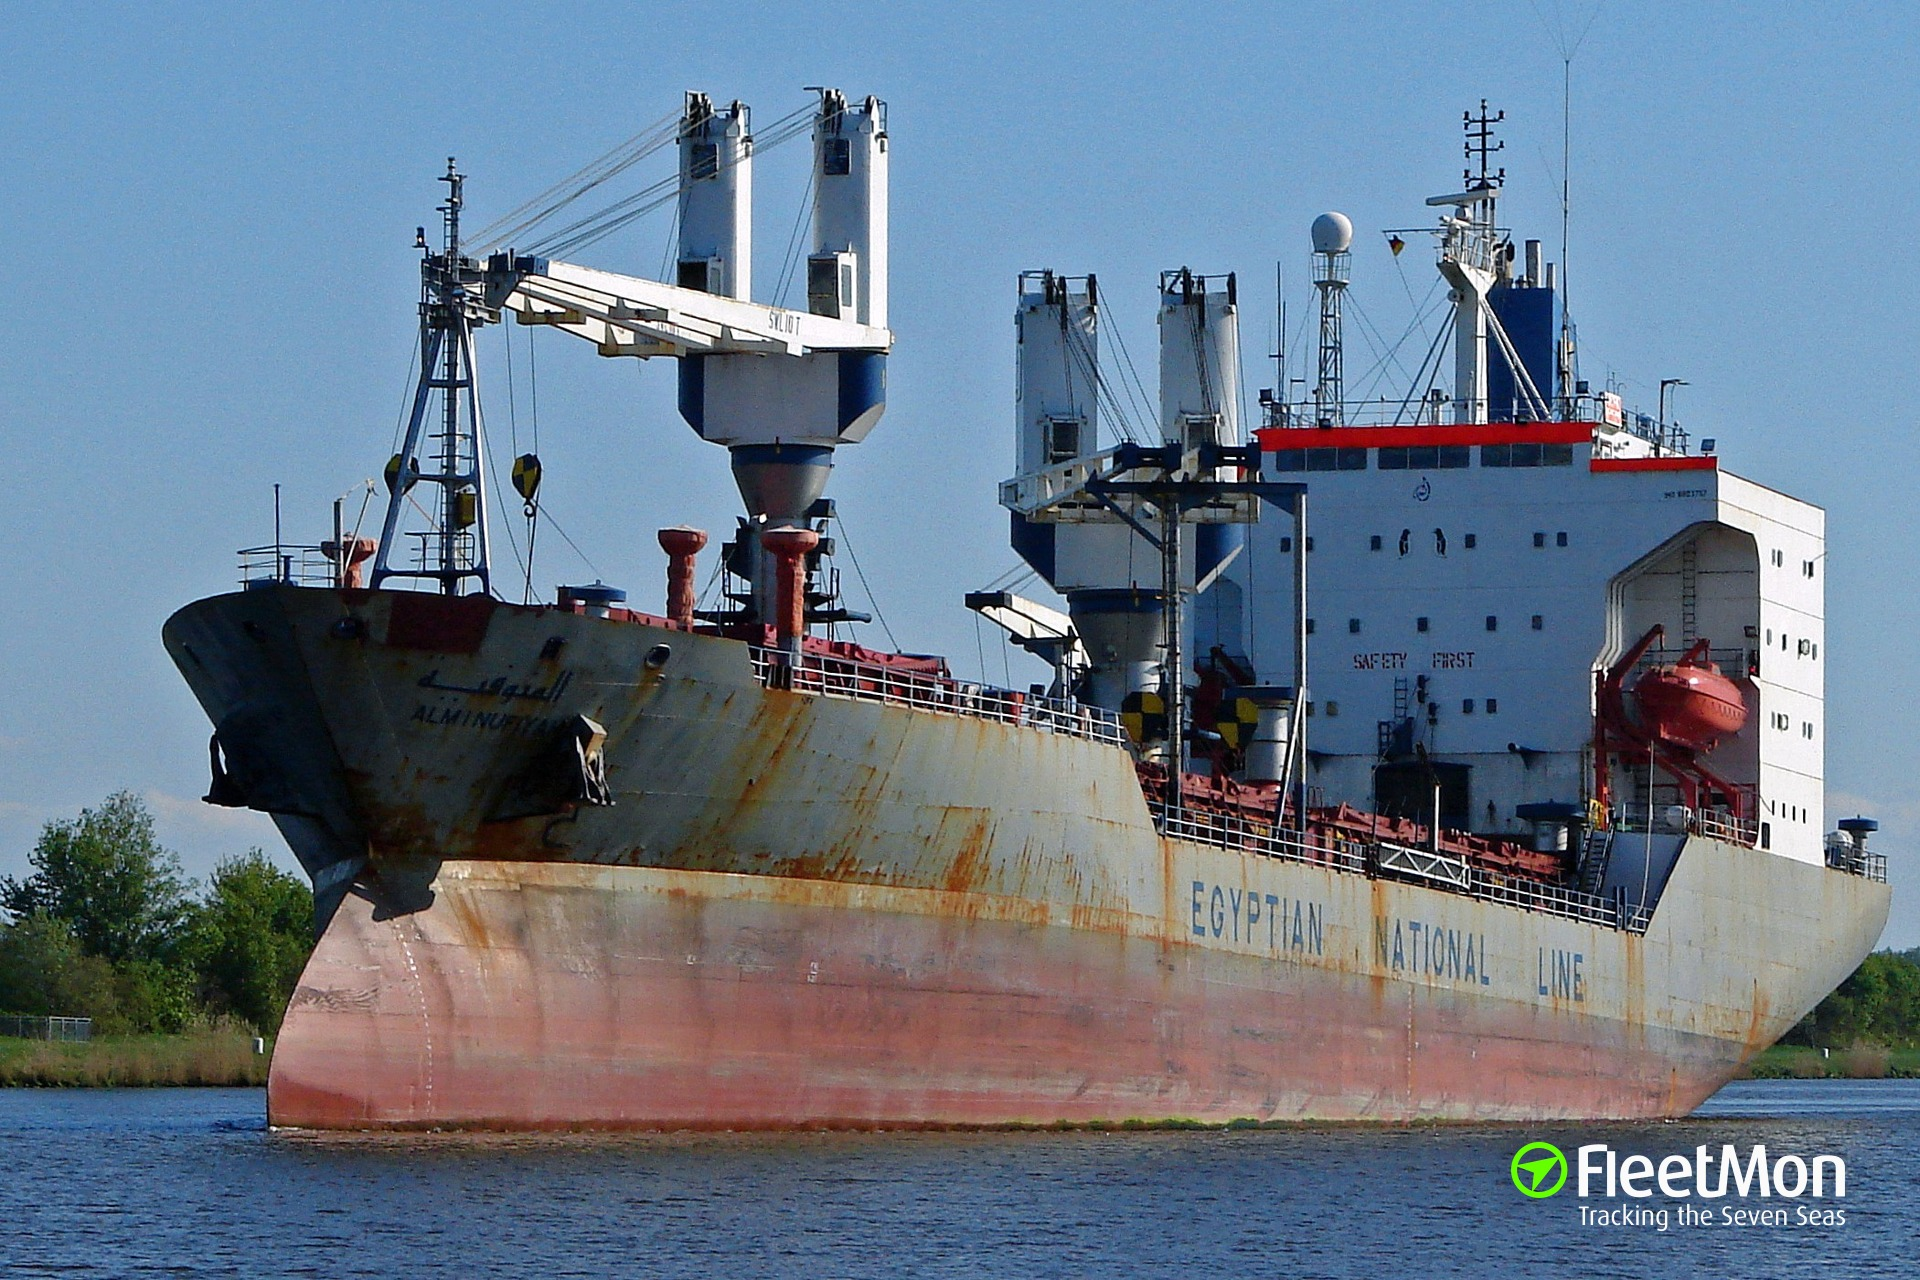 Egyptian freighter disabled, under tow